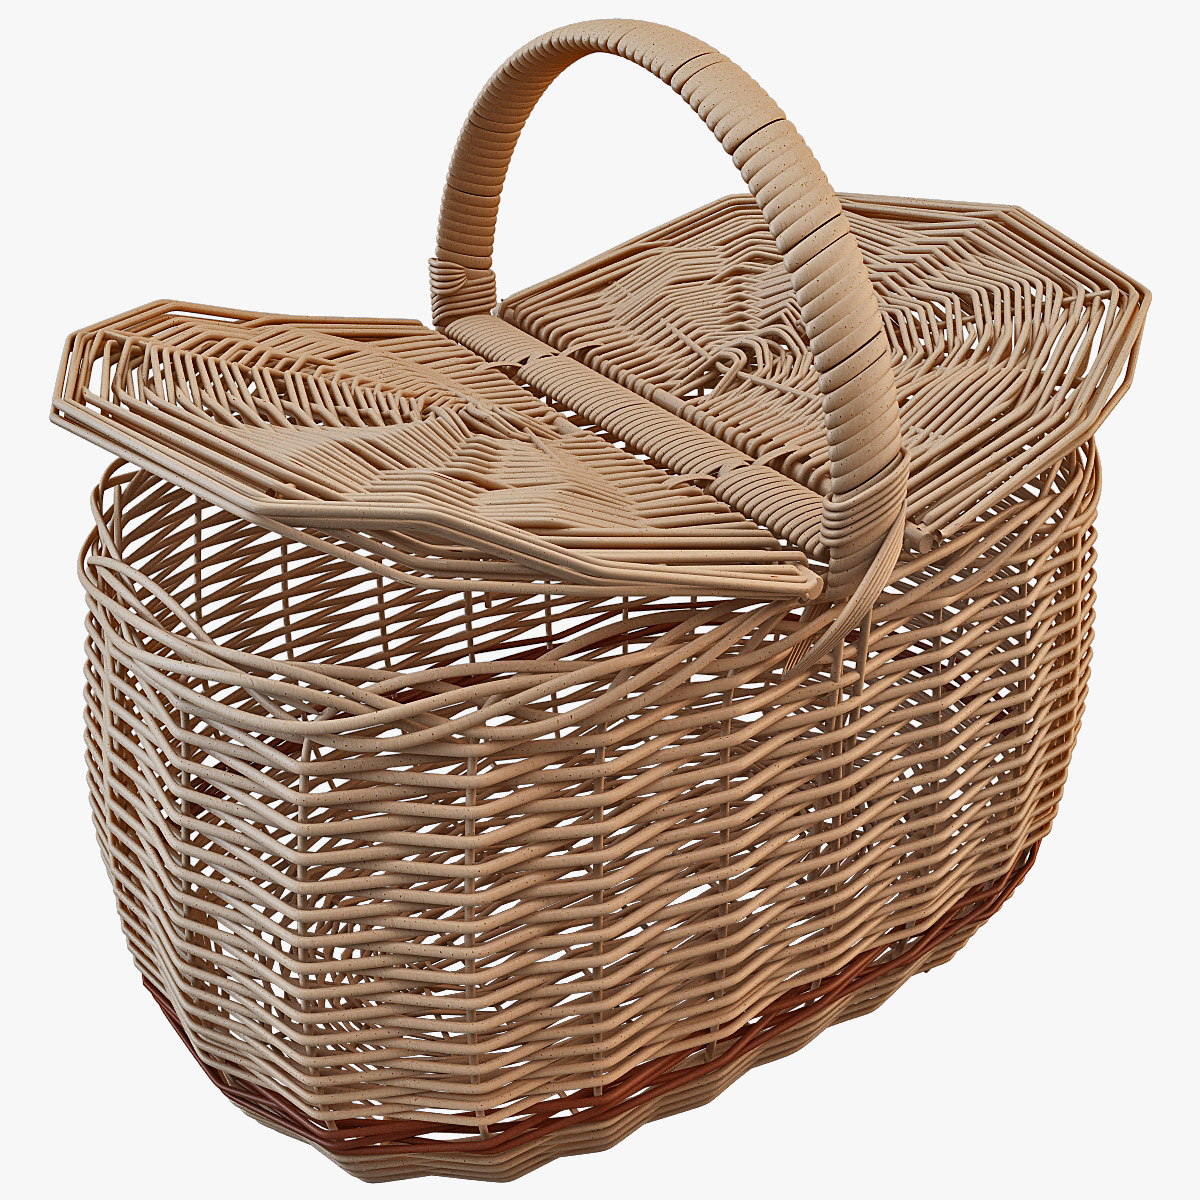 Wicker_Basket_2_000.jpg